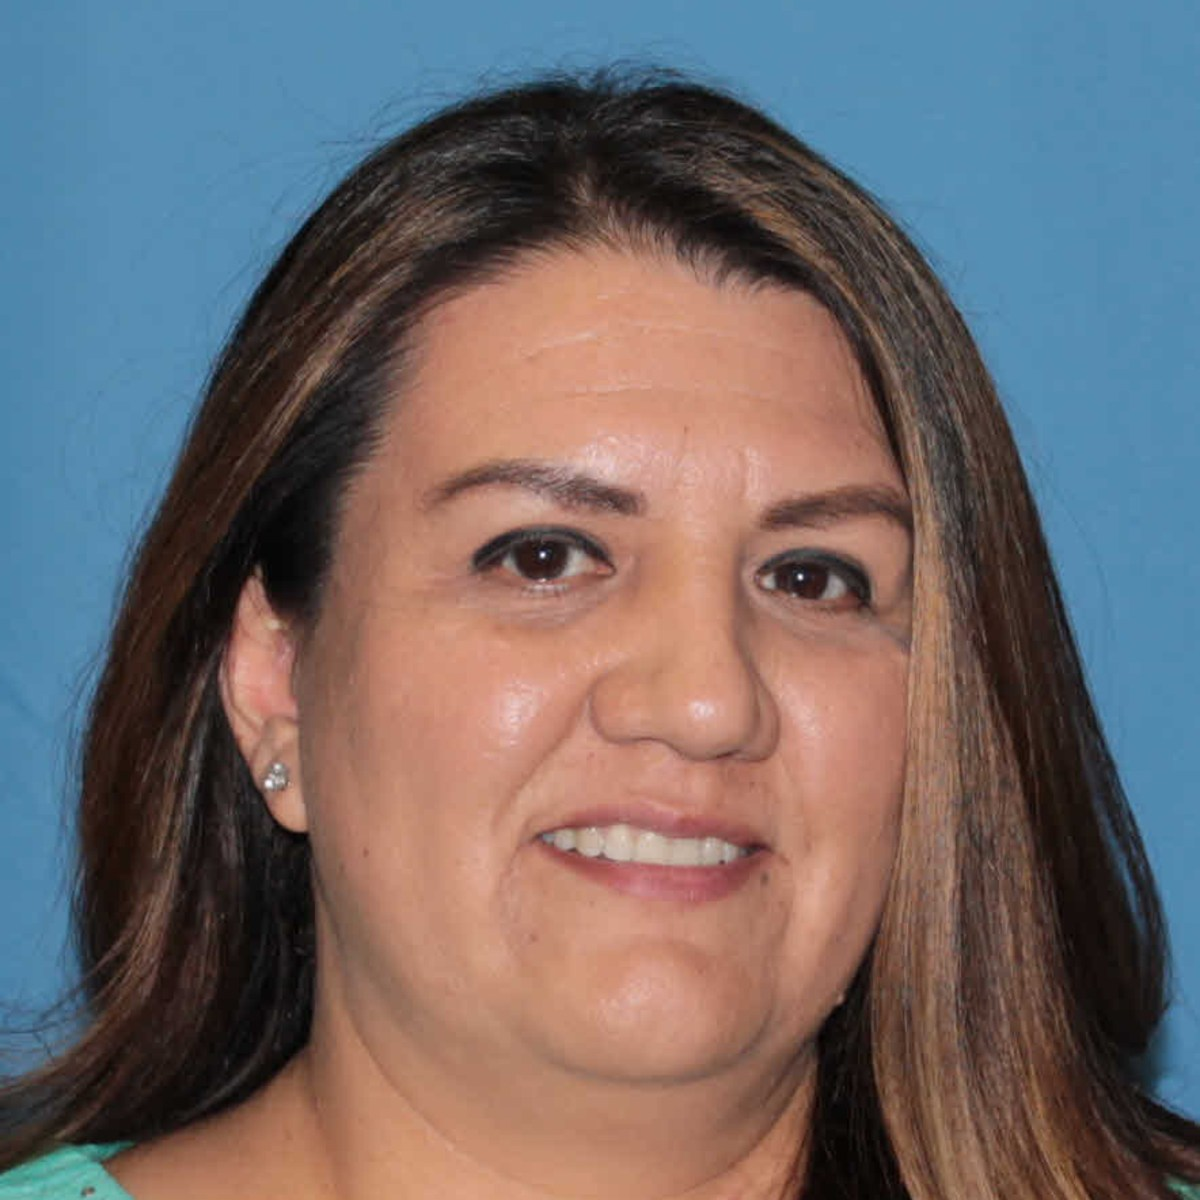 staff directory navarro elementary school graciela osuna s profile photo